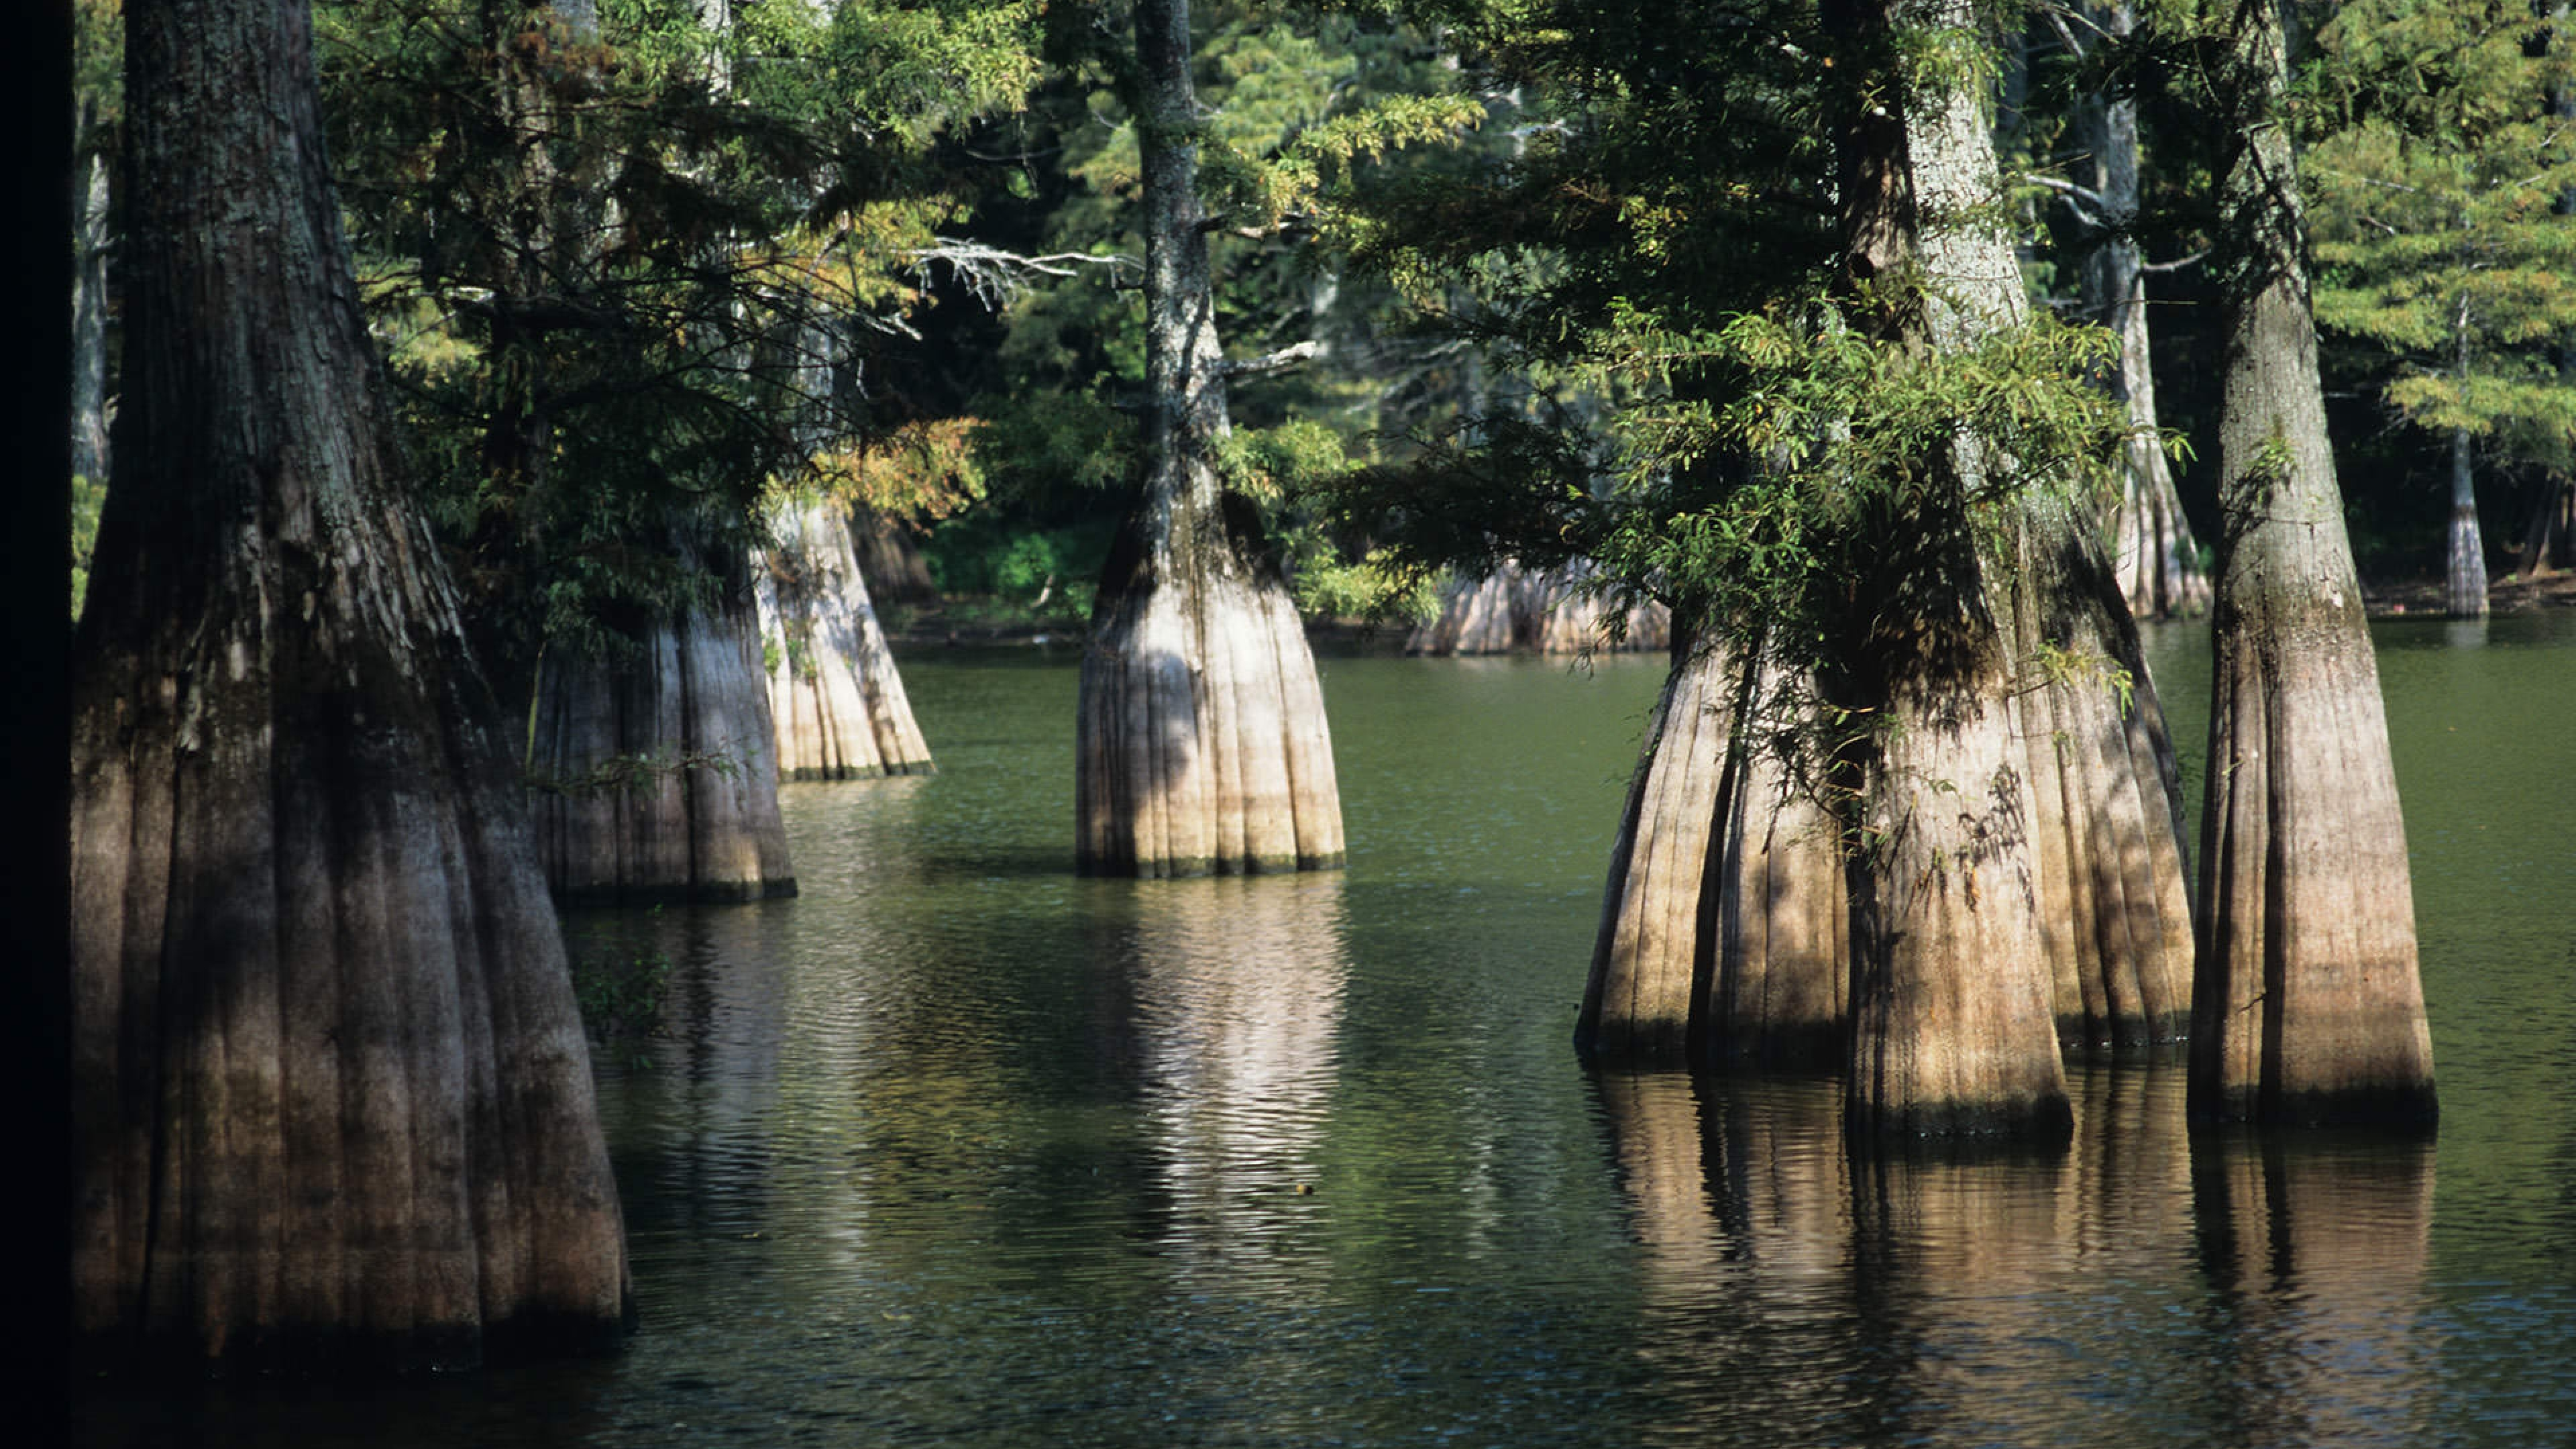 Grove of trees with submerged roots